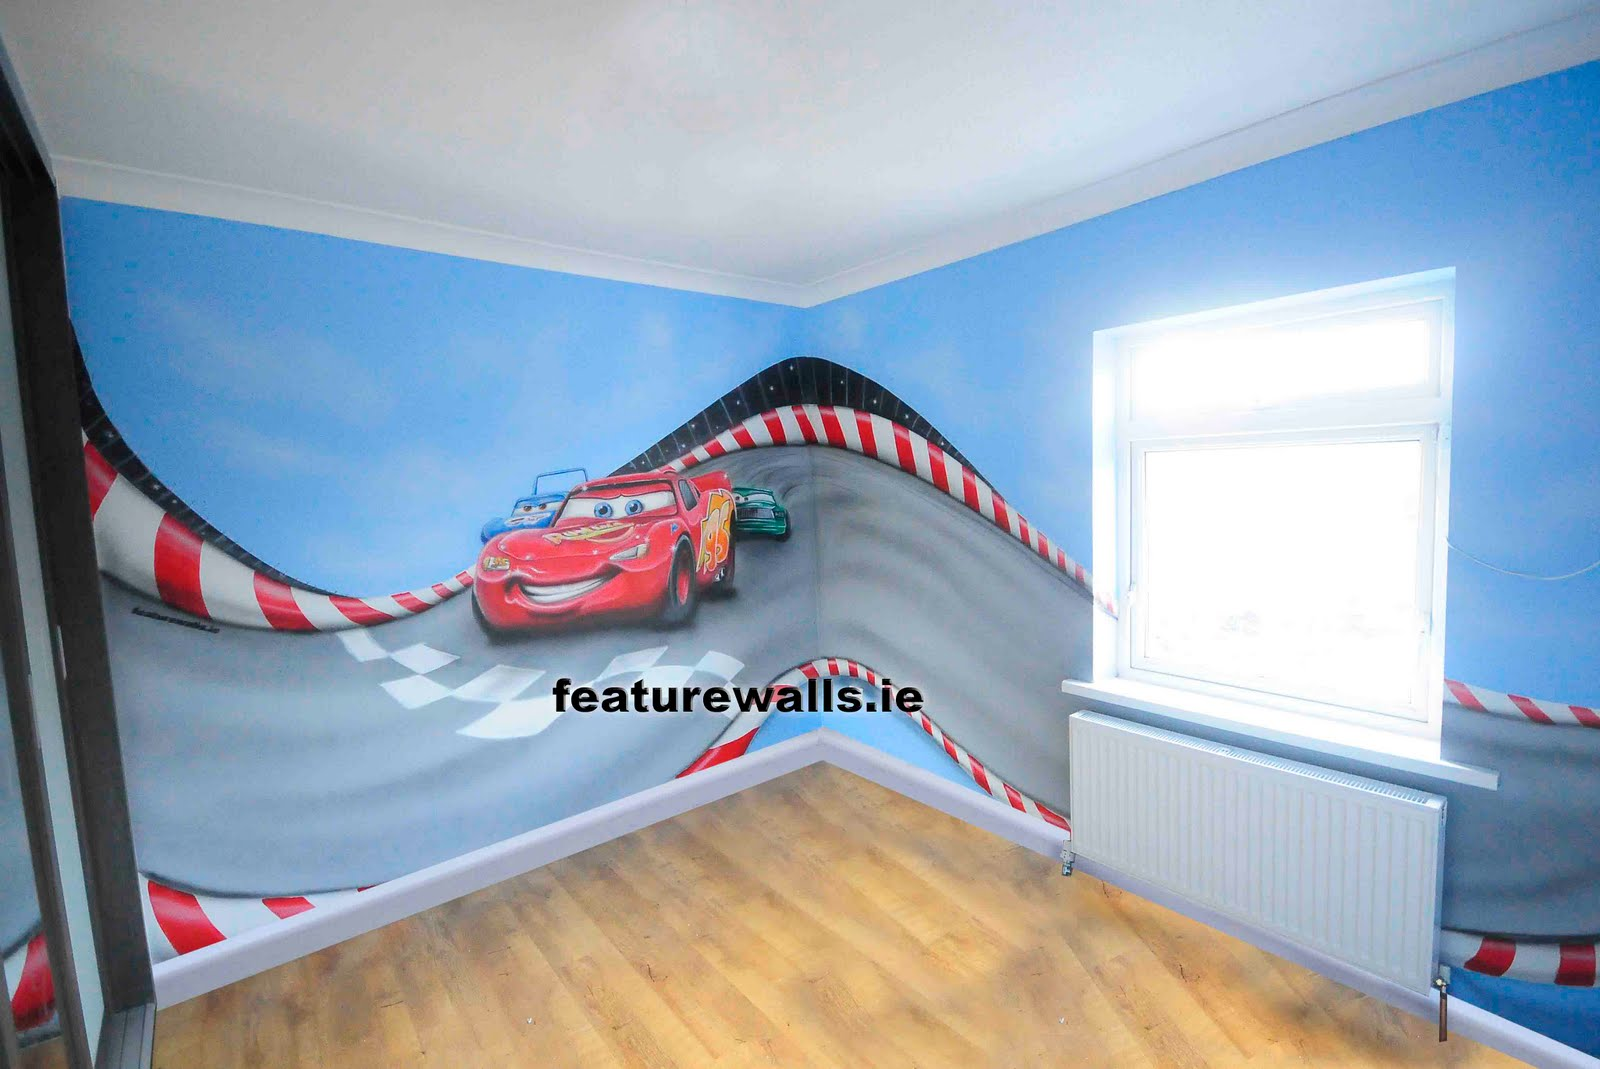 Mural painting pictures posters news and videos on your pursuit hobbies interests and worries - Disney pixar cars wall mural ...